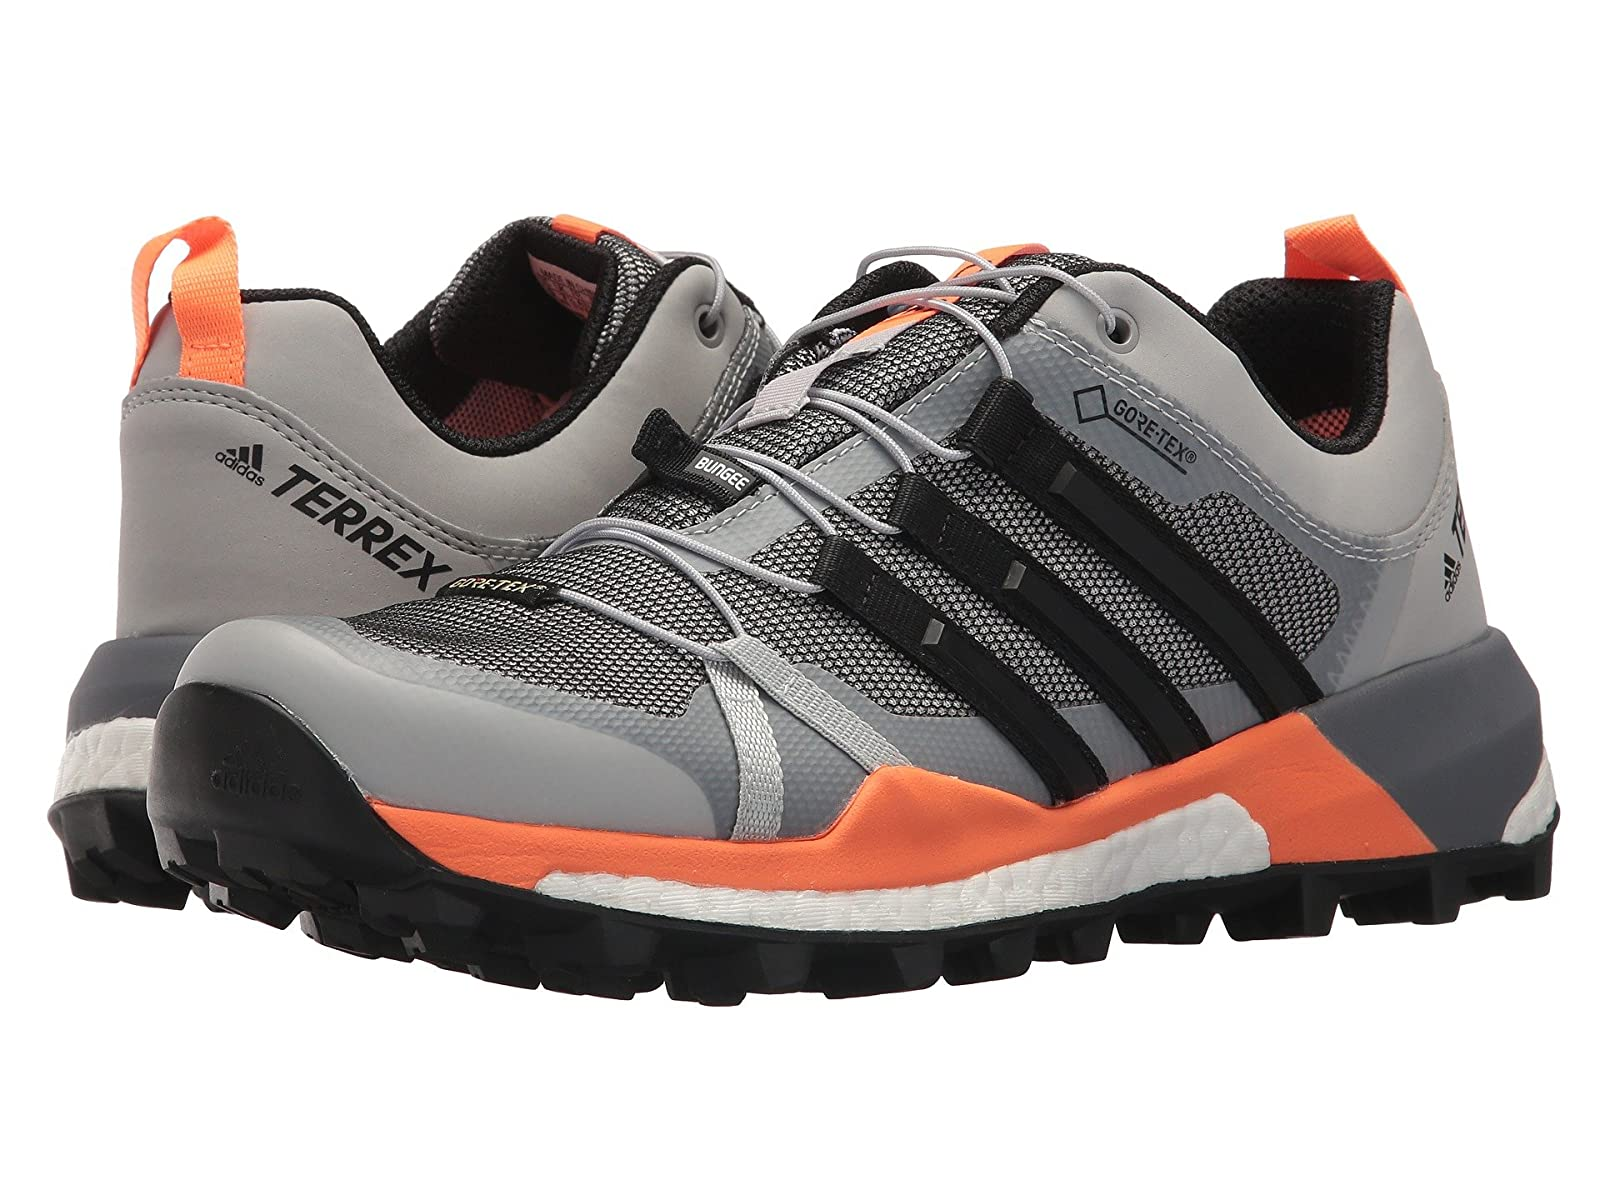 adidas Outdoor Terrex Skychaser GTX®Atmospheric grades have affordable shoes